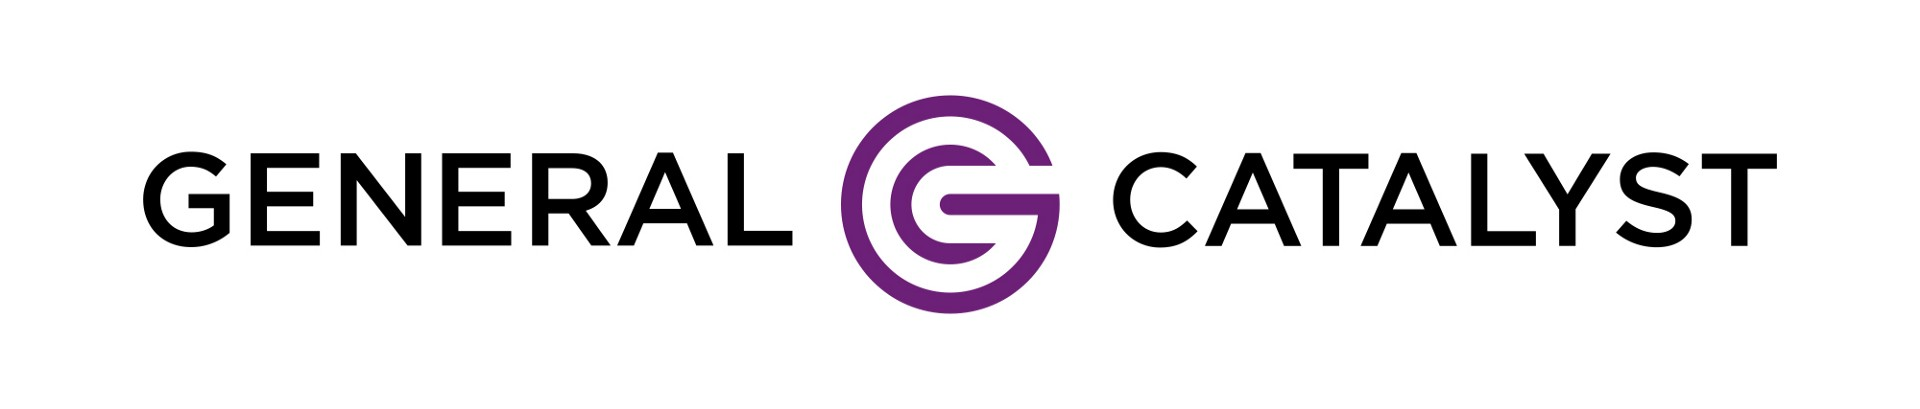 General catalyst partners logo